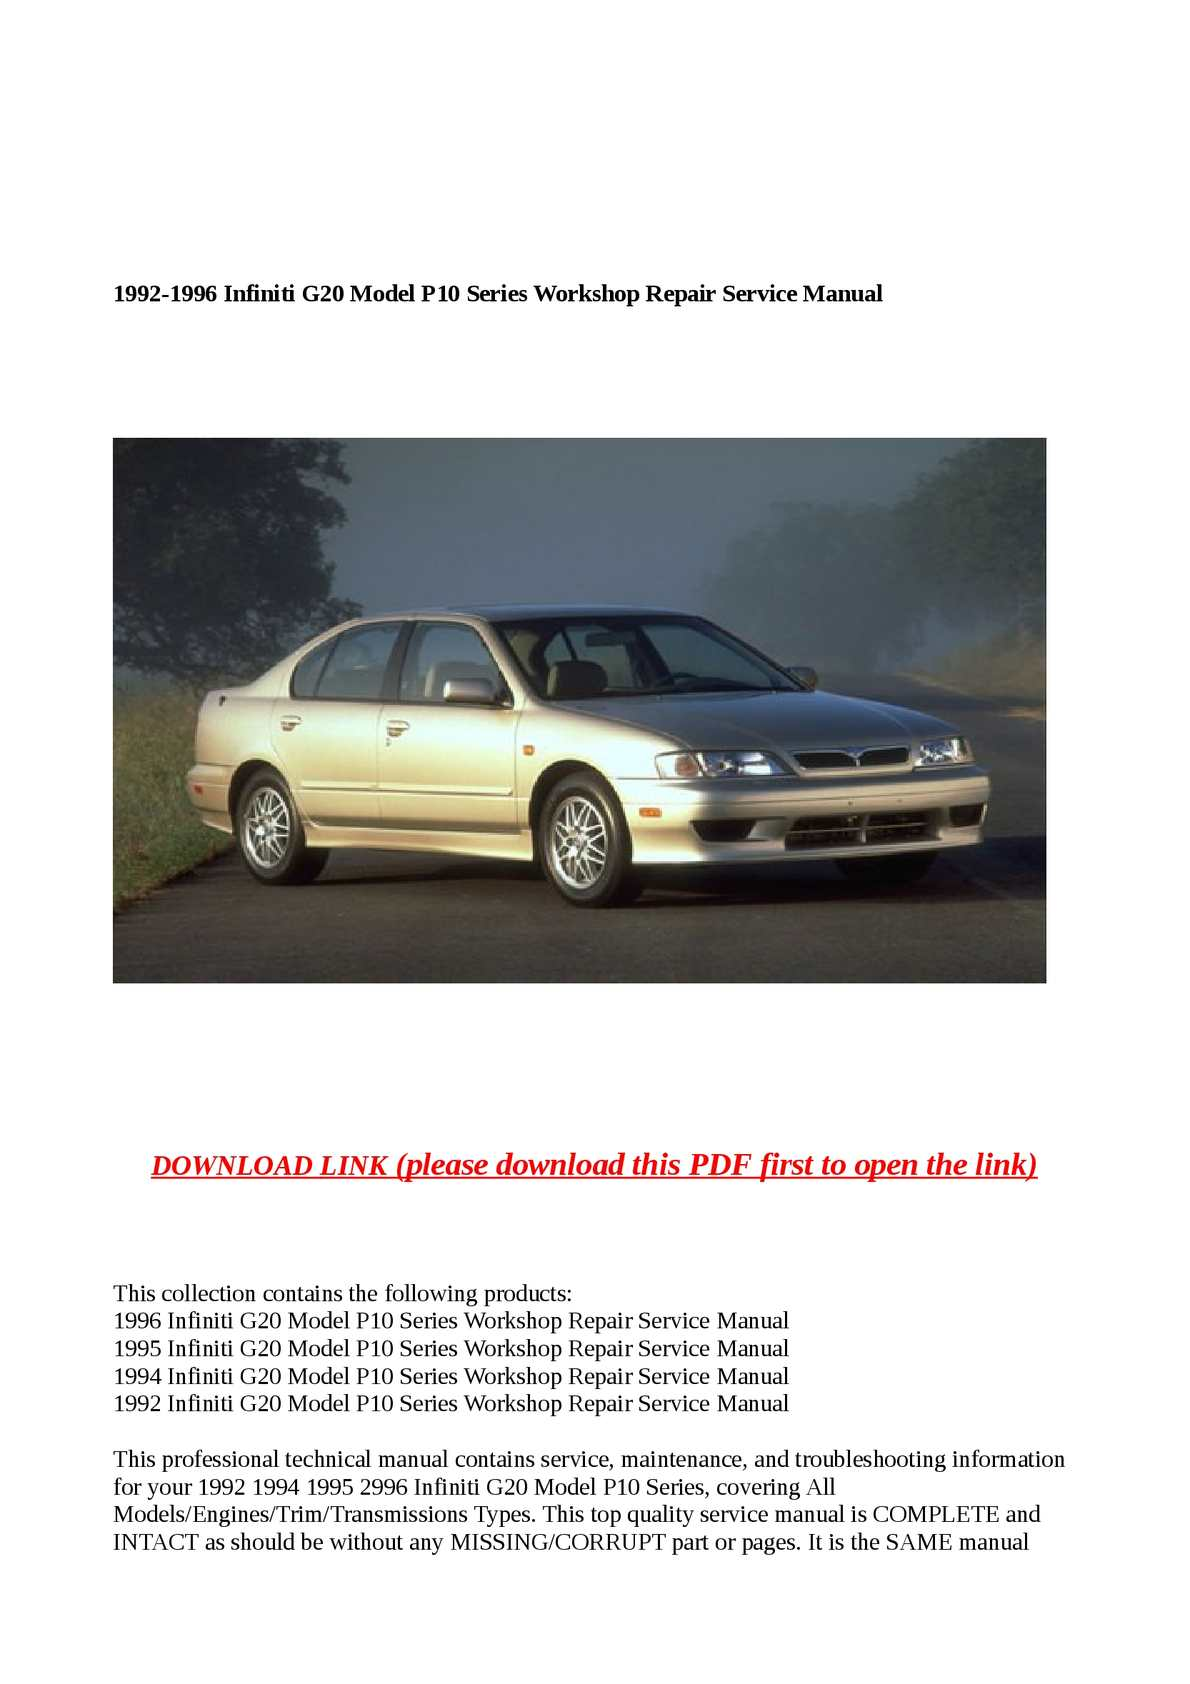 Calamo 1992 1996 Infiniti G20 Model P10 Series Workshop Repair 1995 Alternator Wiring Diagram Service Manual